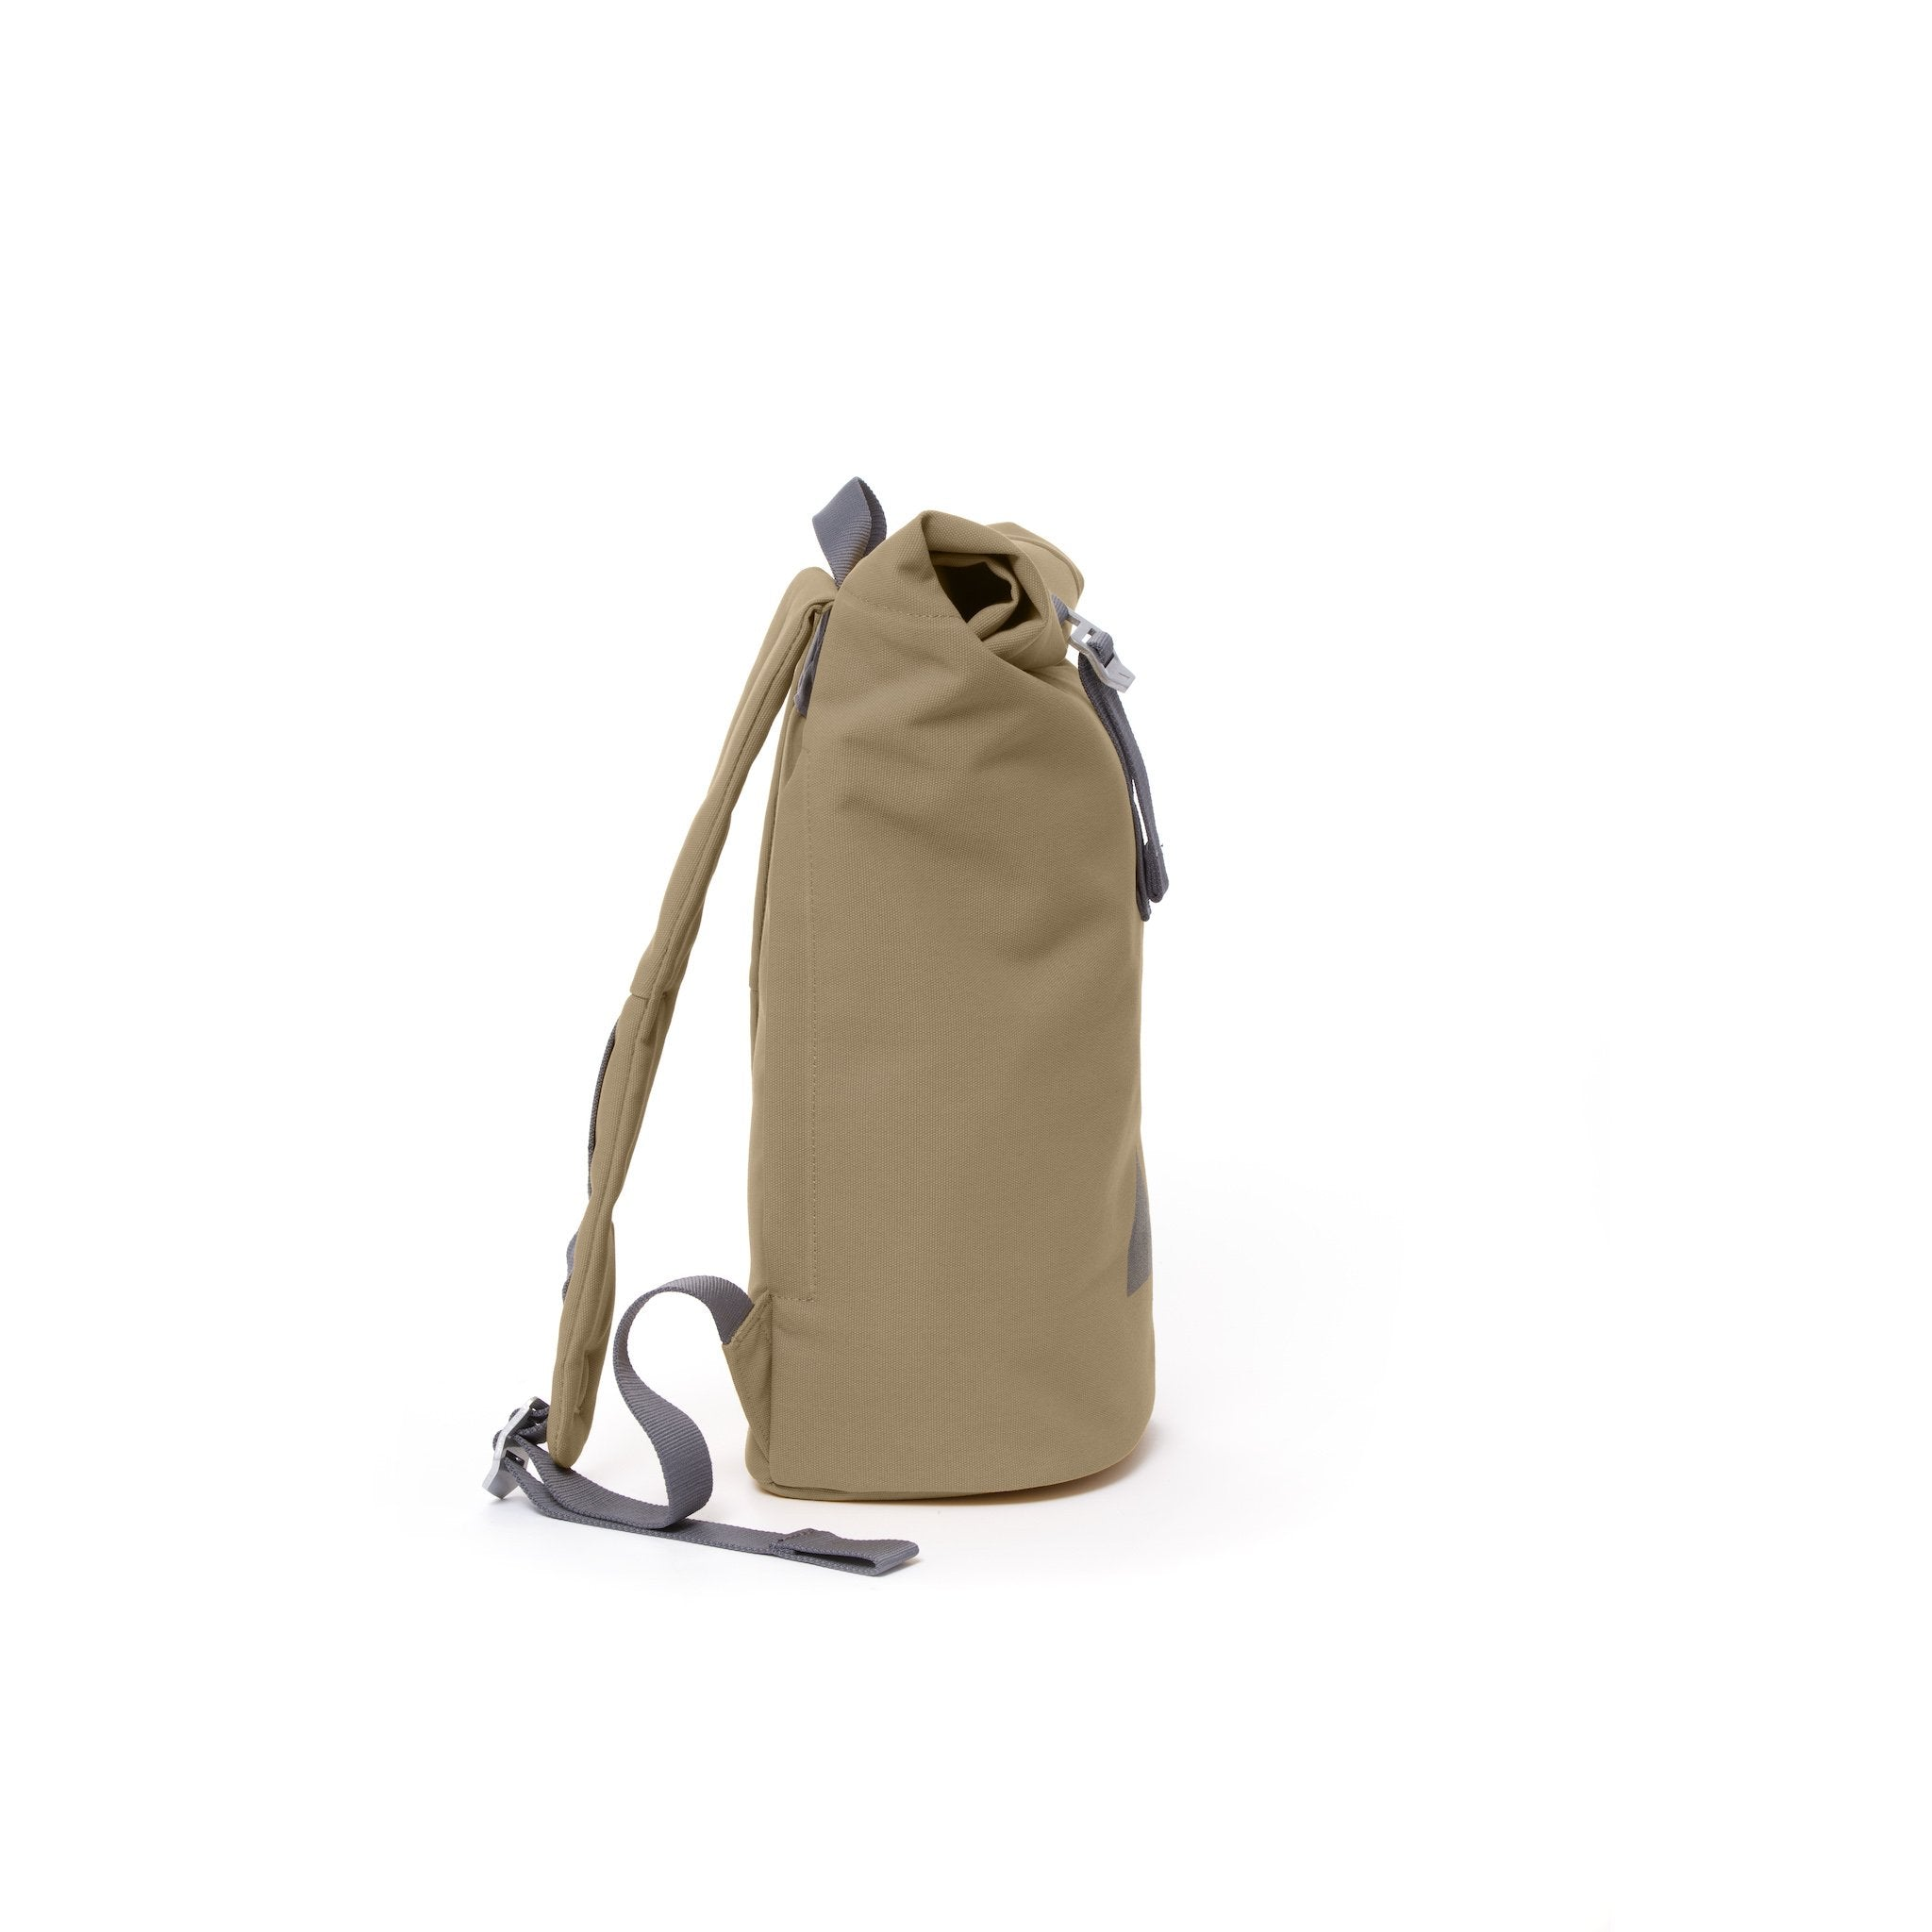 Khaki waterproof canvas women's rolltop backpack.